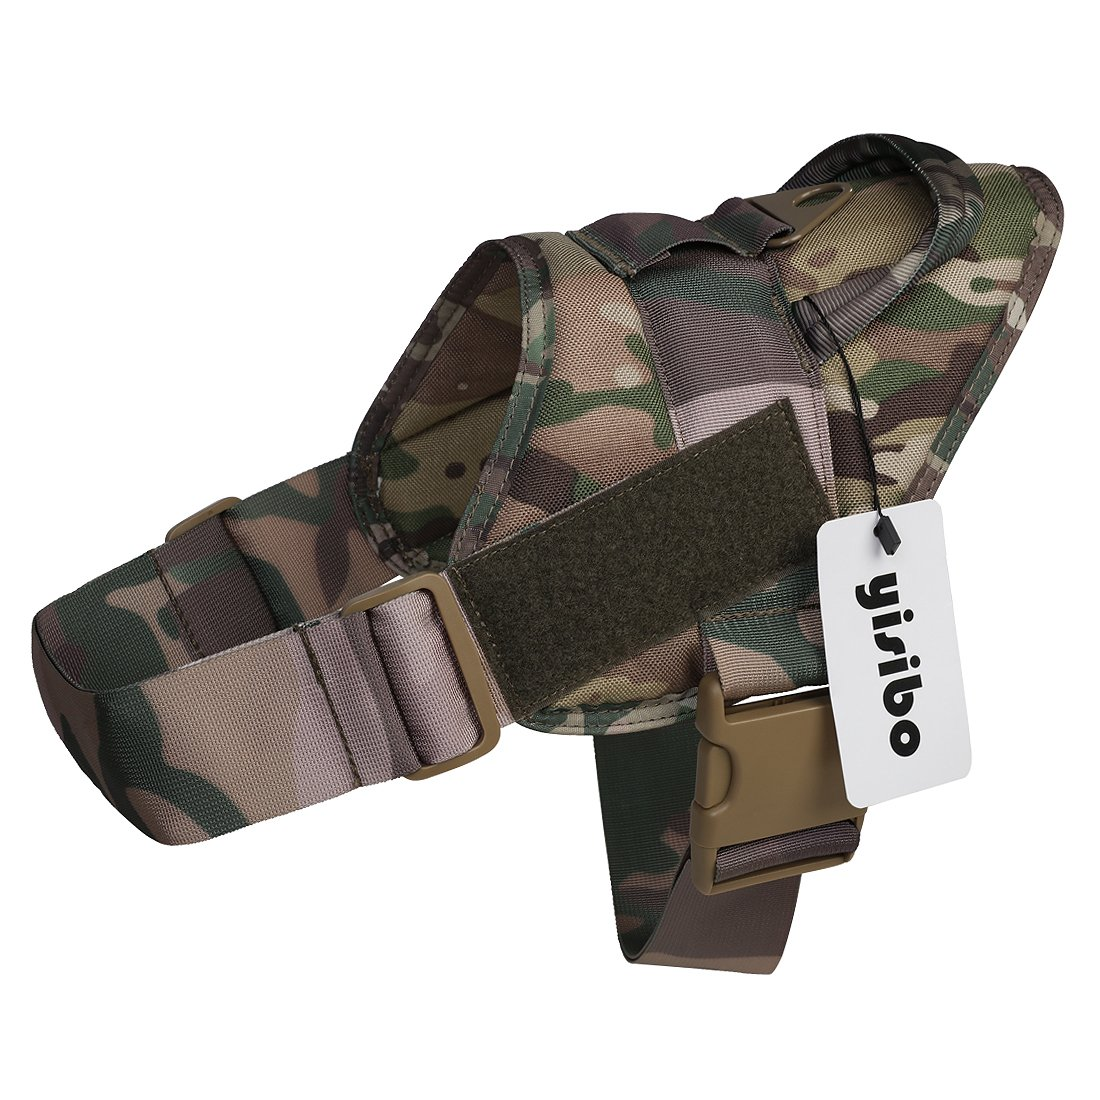 yisibo Service Dog Vest Tactical Military Patrol K9 Working Dog Harness with Handle(L(27-35'' Chest Girth),Camo)